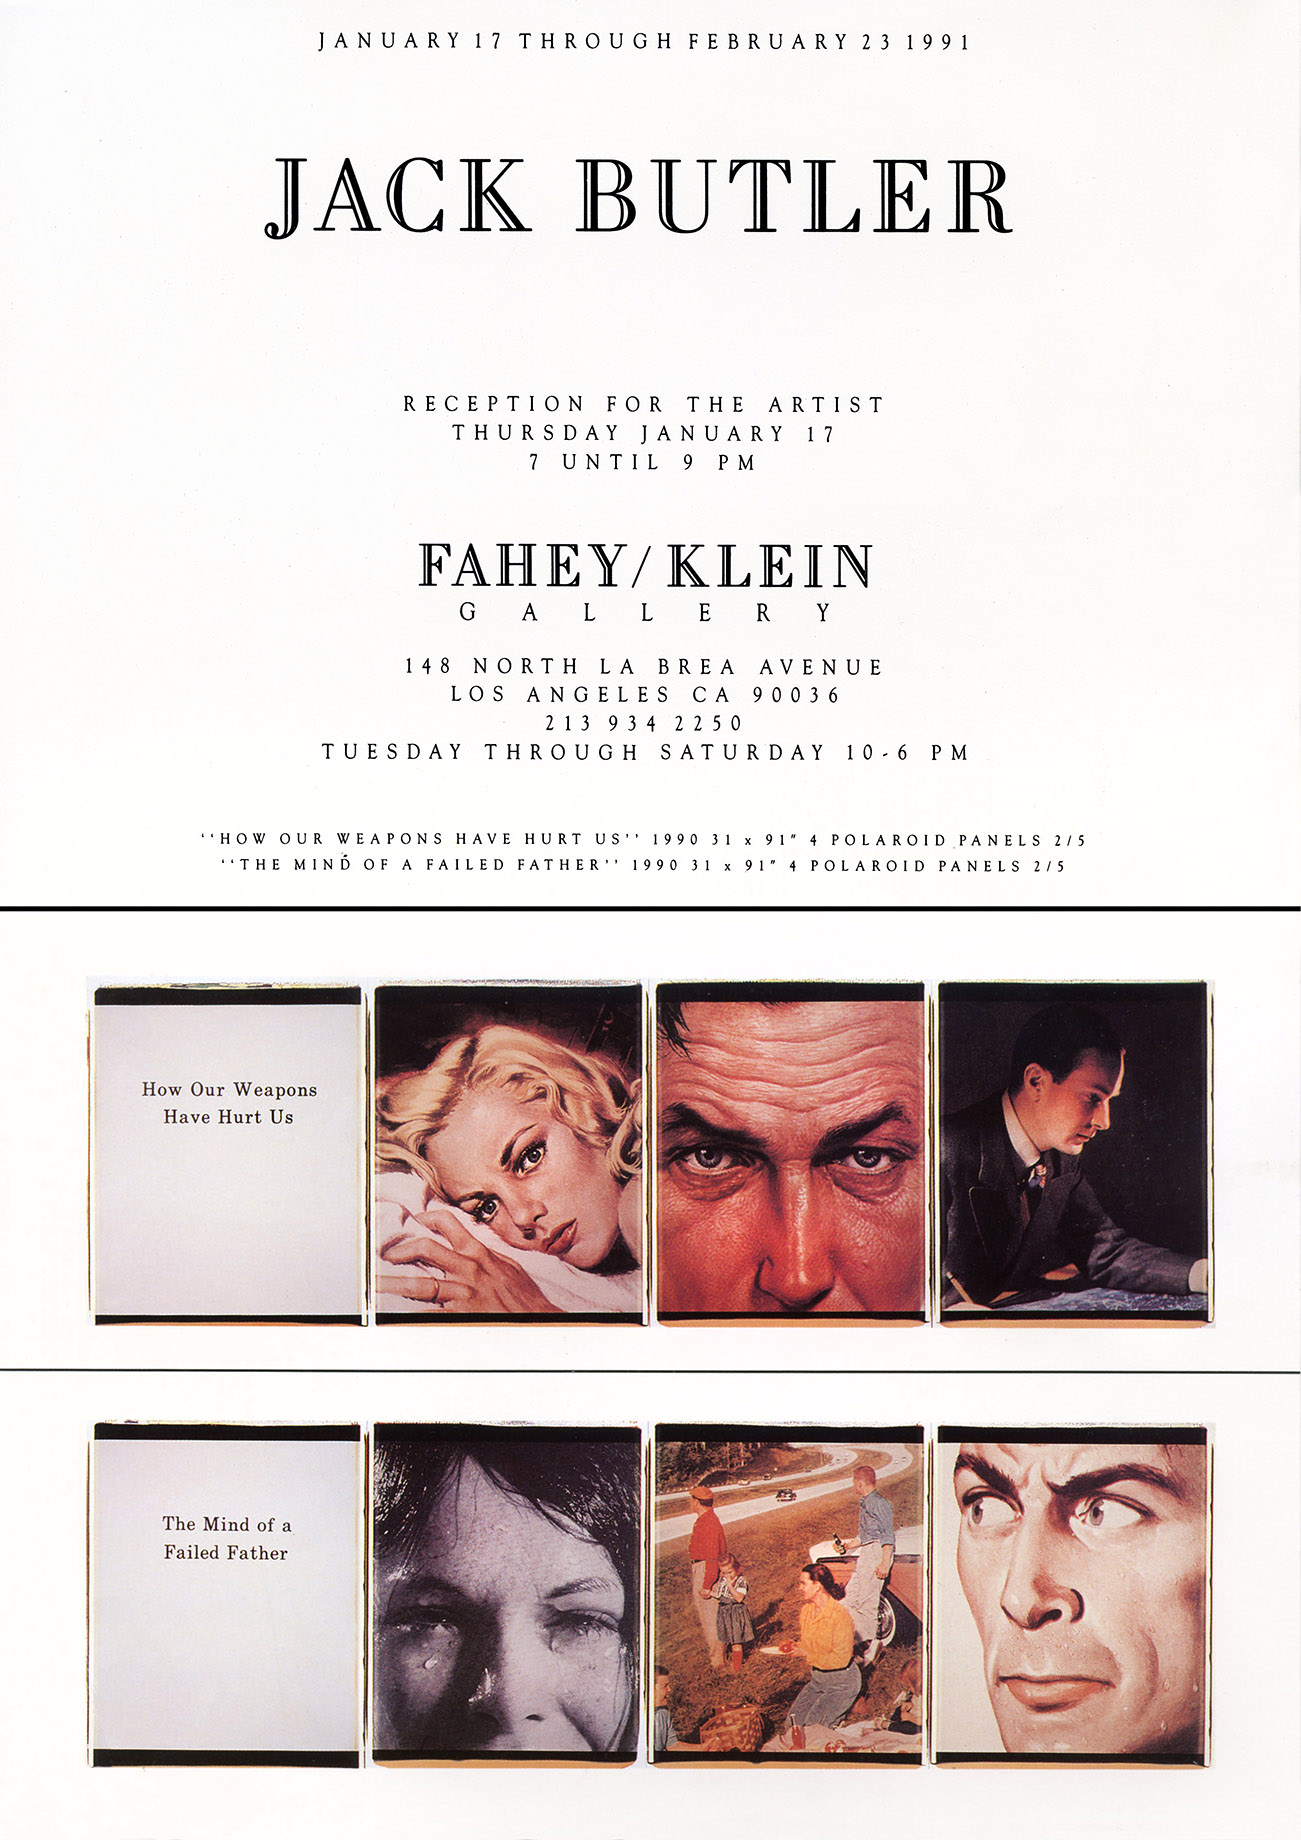 Announcement, Fahey Klein Gallery 1991